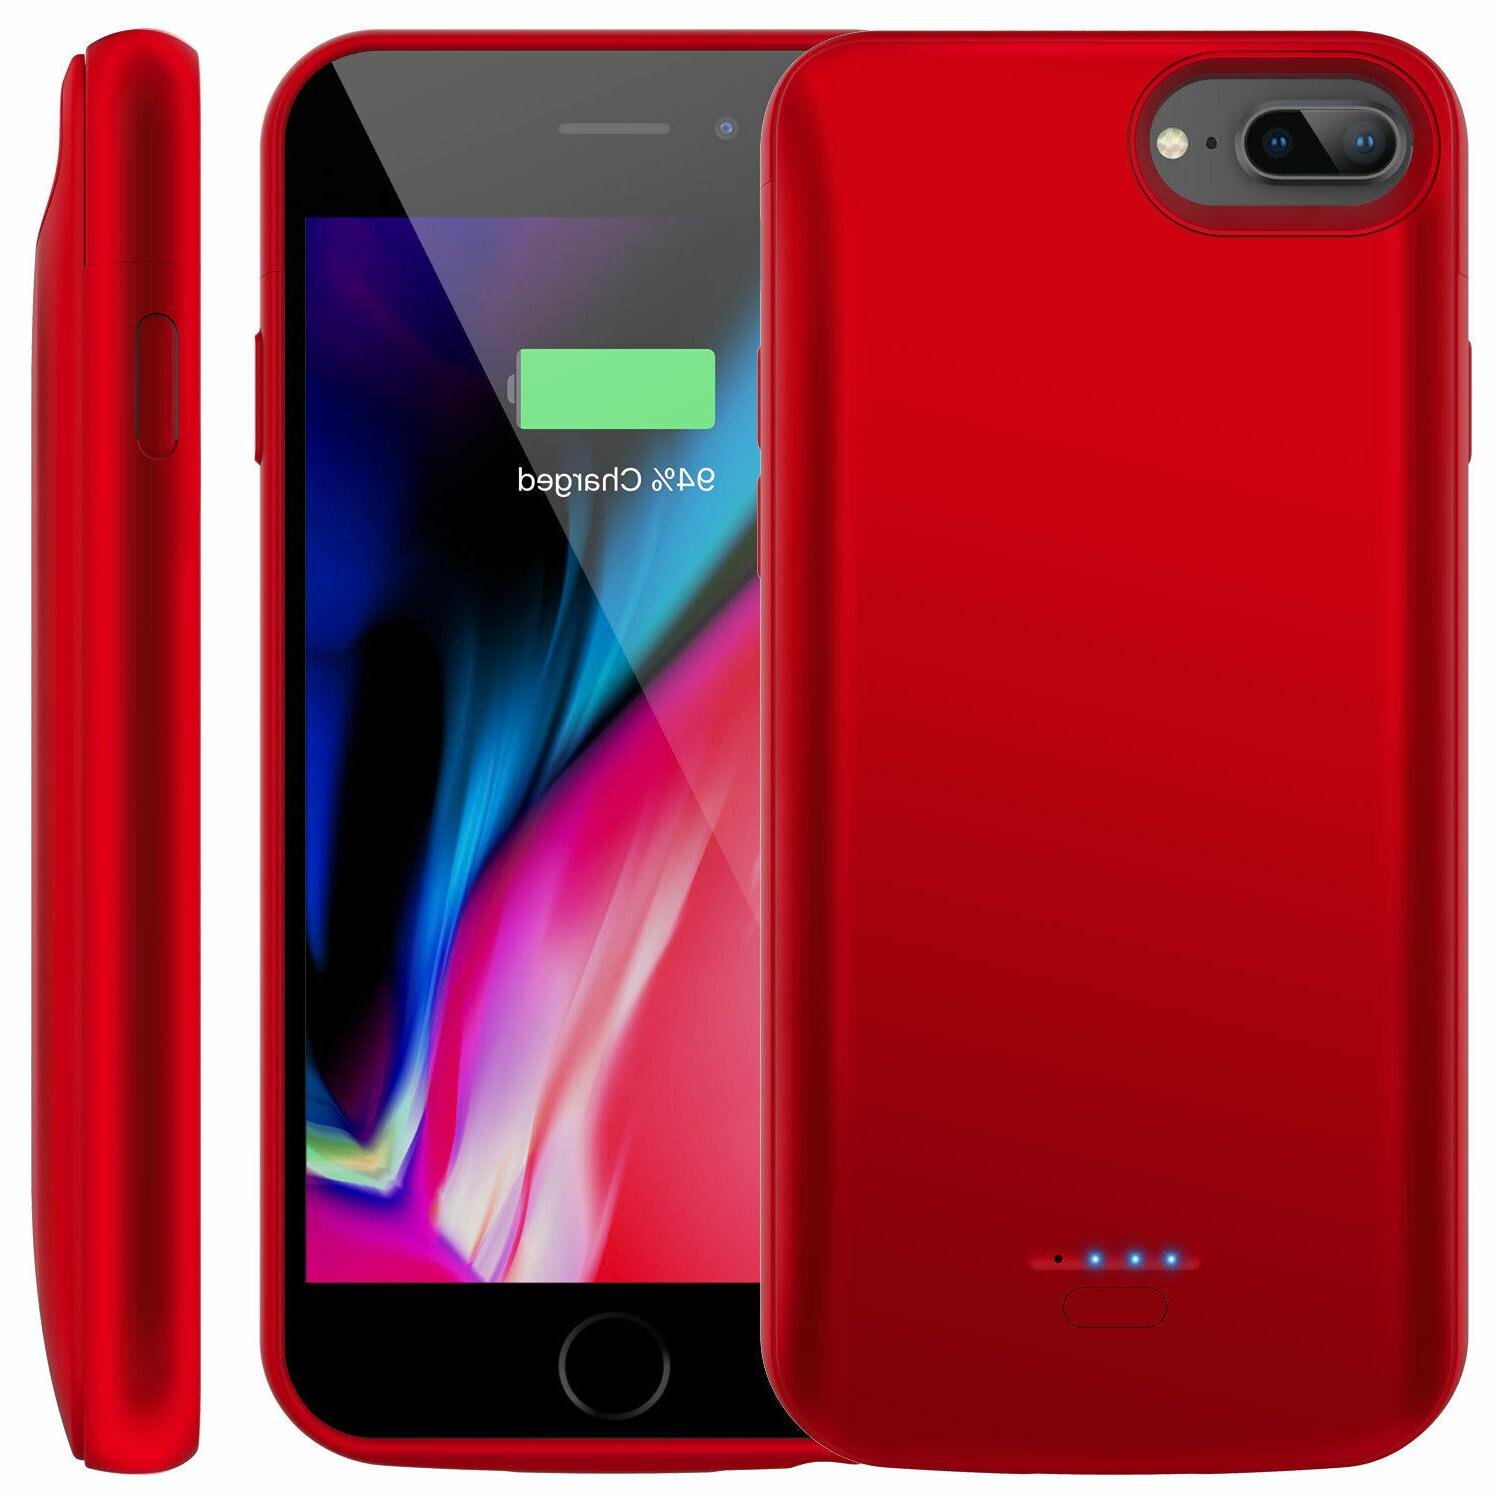 For Apple iPhone 7/7 Plus/8/8 Plus Power Cover